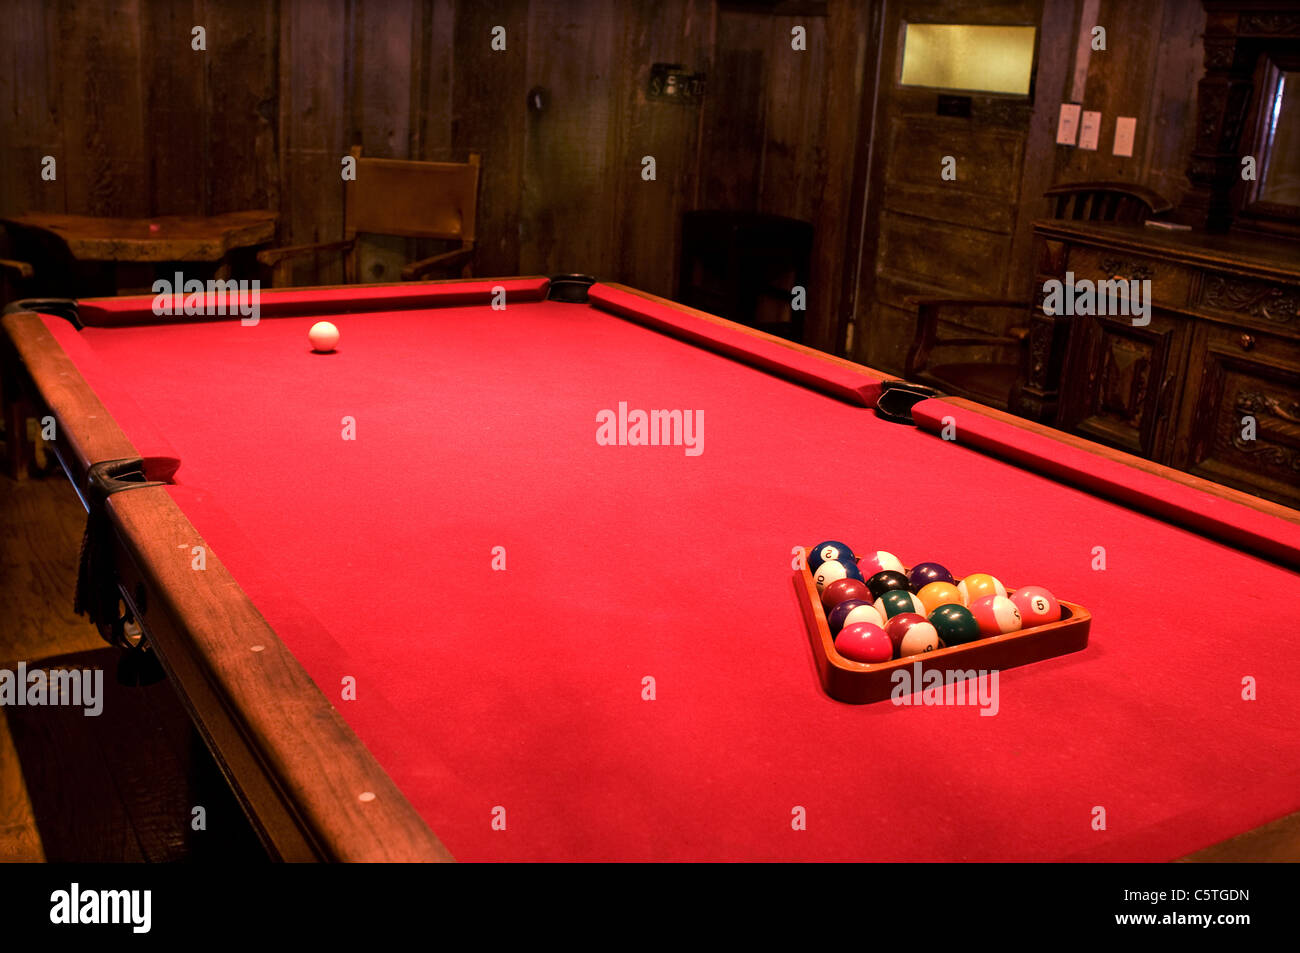 Red pool table - Stock Image